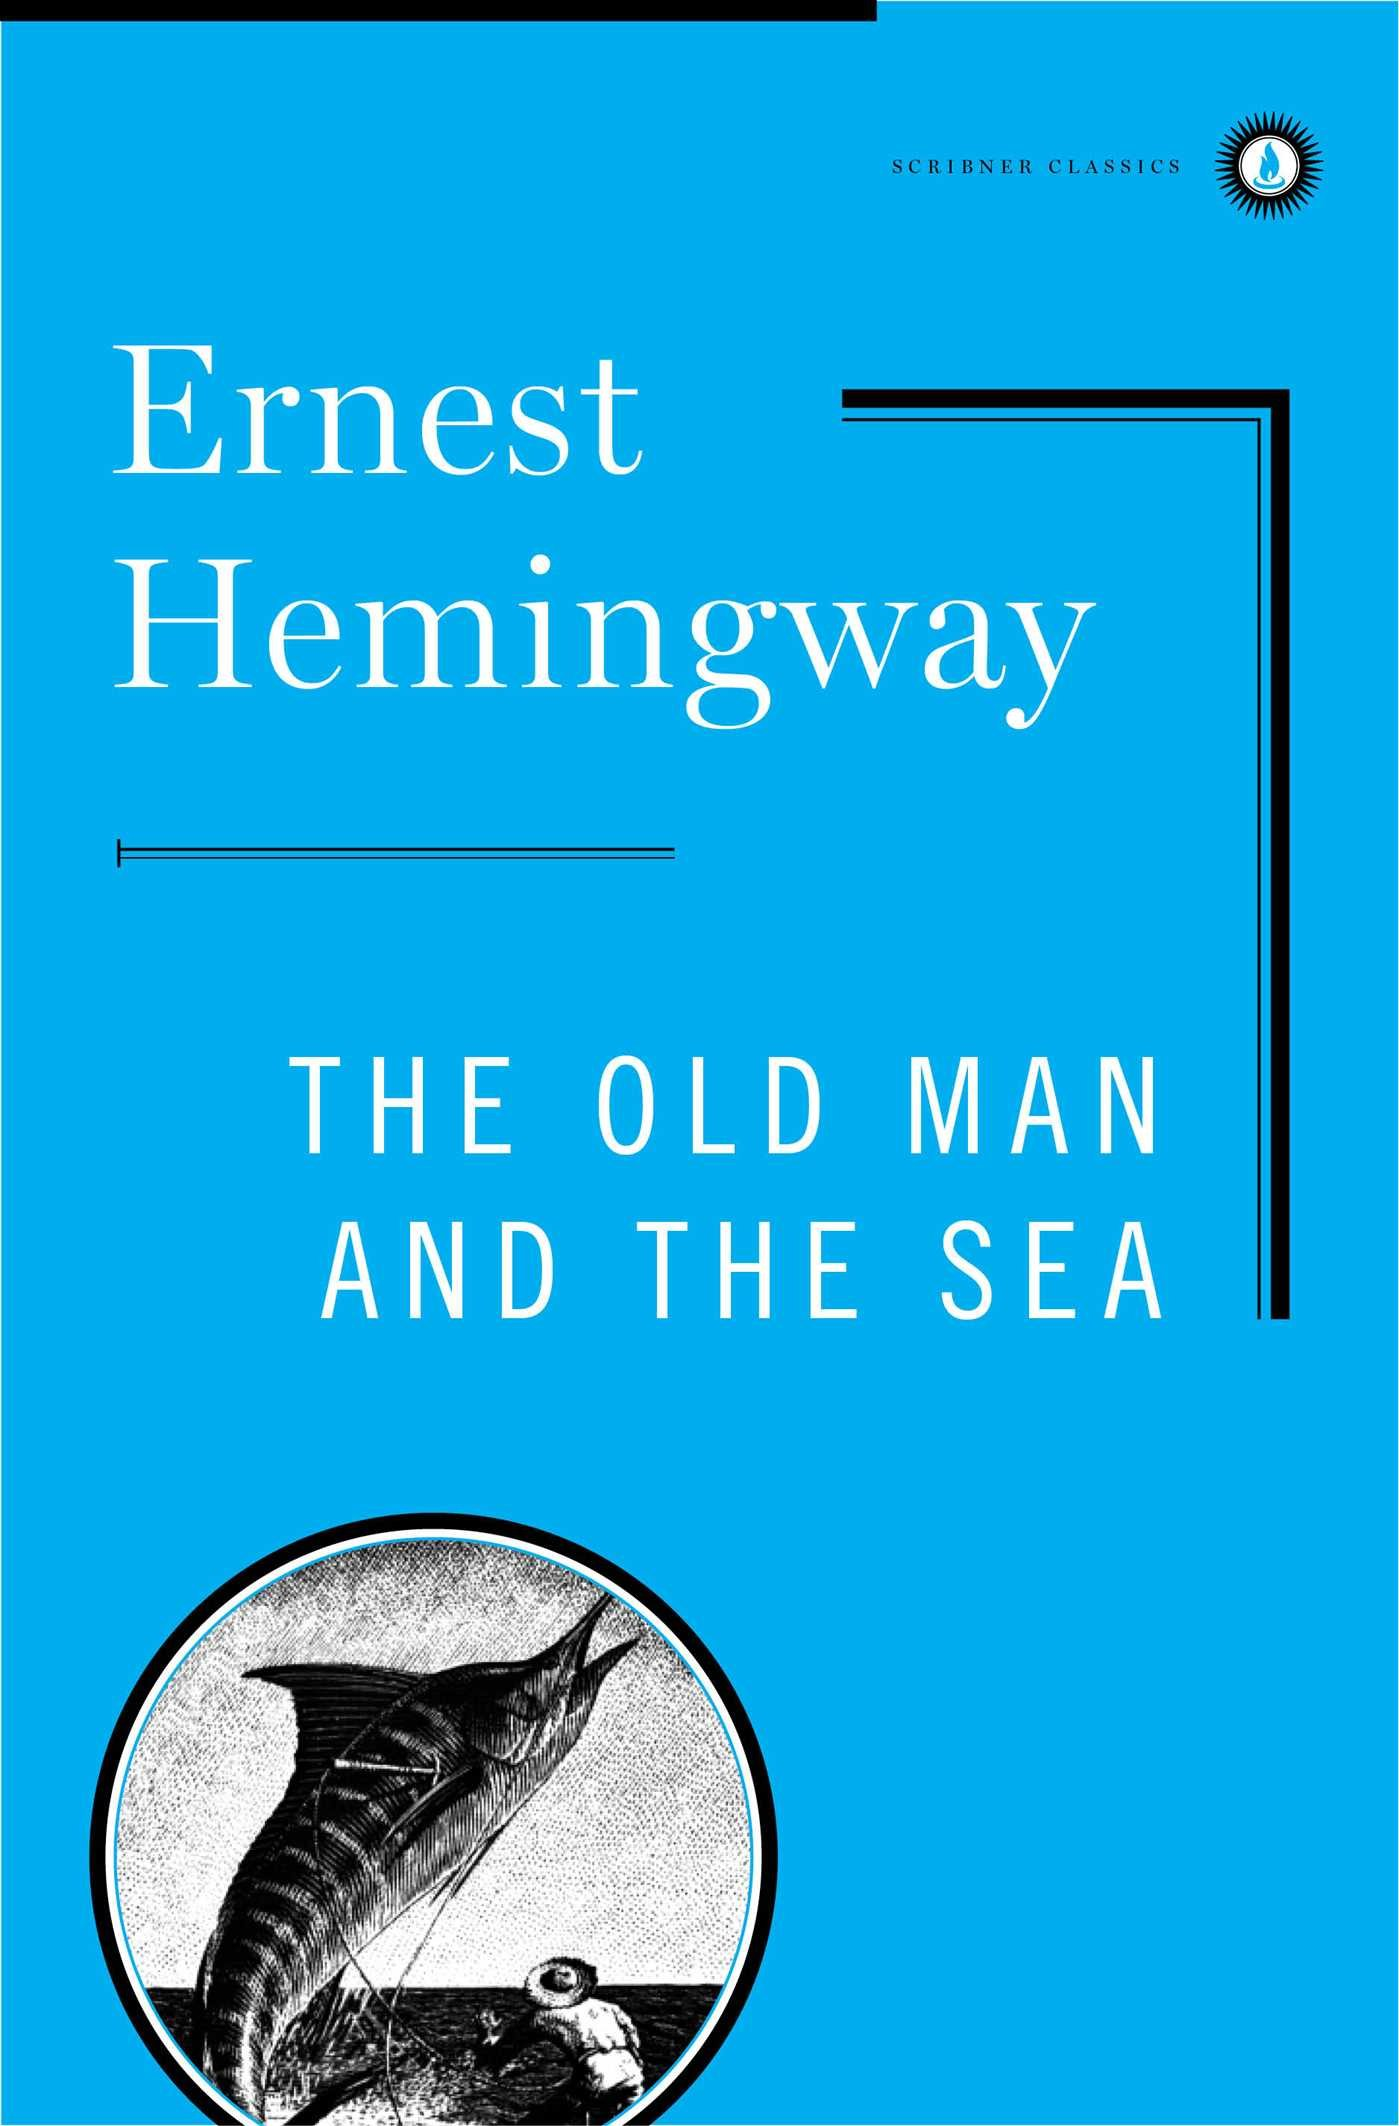 the old man and the sea scribner classics ernest hemingway  the old man and the sea scribner classics ernest hemingway 9780684830490 com books